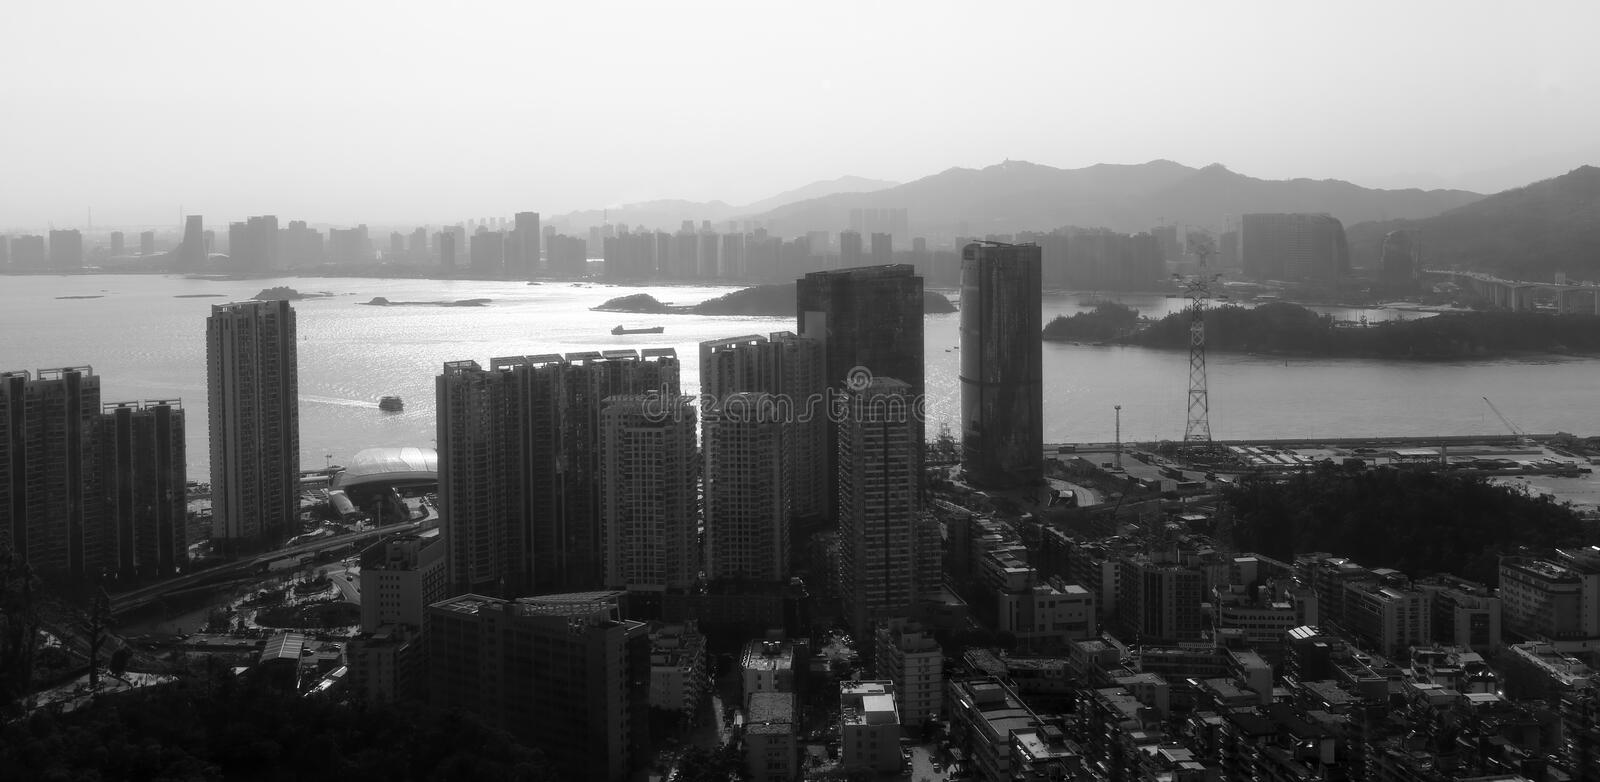 The xiamen port area, black and white image. Xiamen port has the advantages of wide port, deep water, no frost, low fog, low siltation, and good shelter stock photos